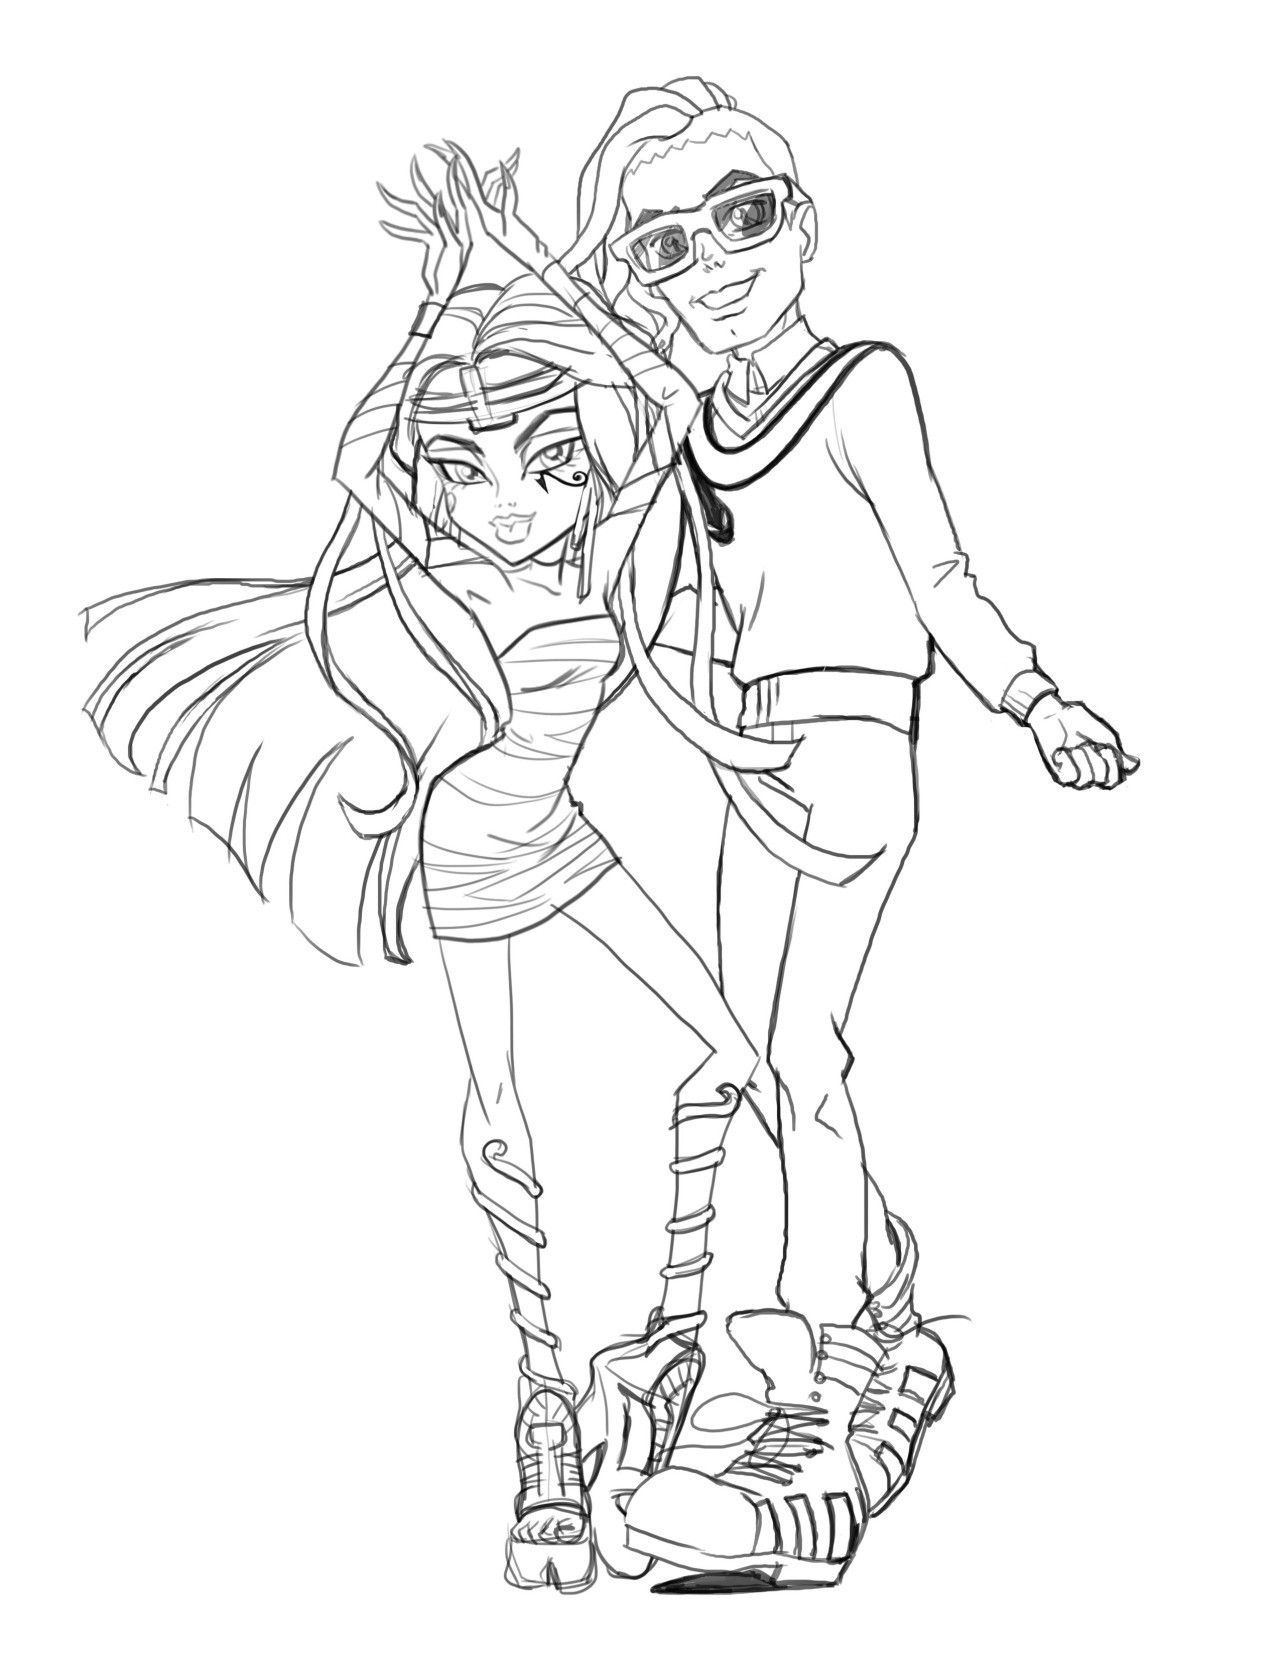 Monster High Cleo And Deuce In Sketch Form For The Movie Boo